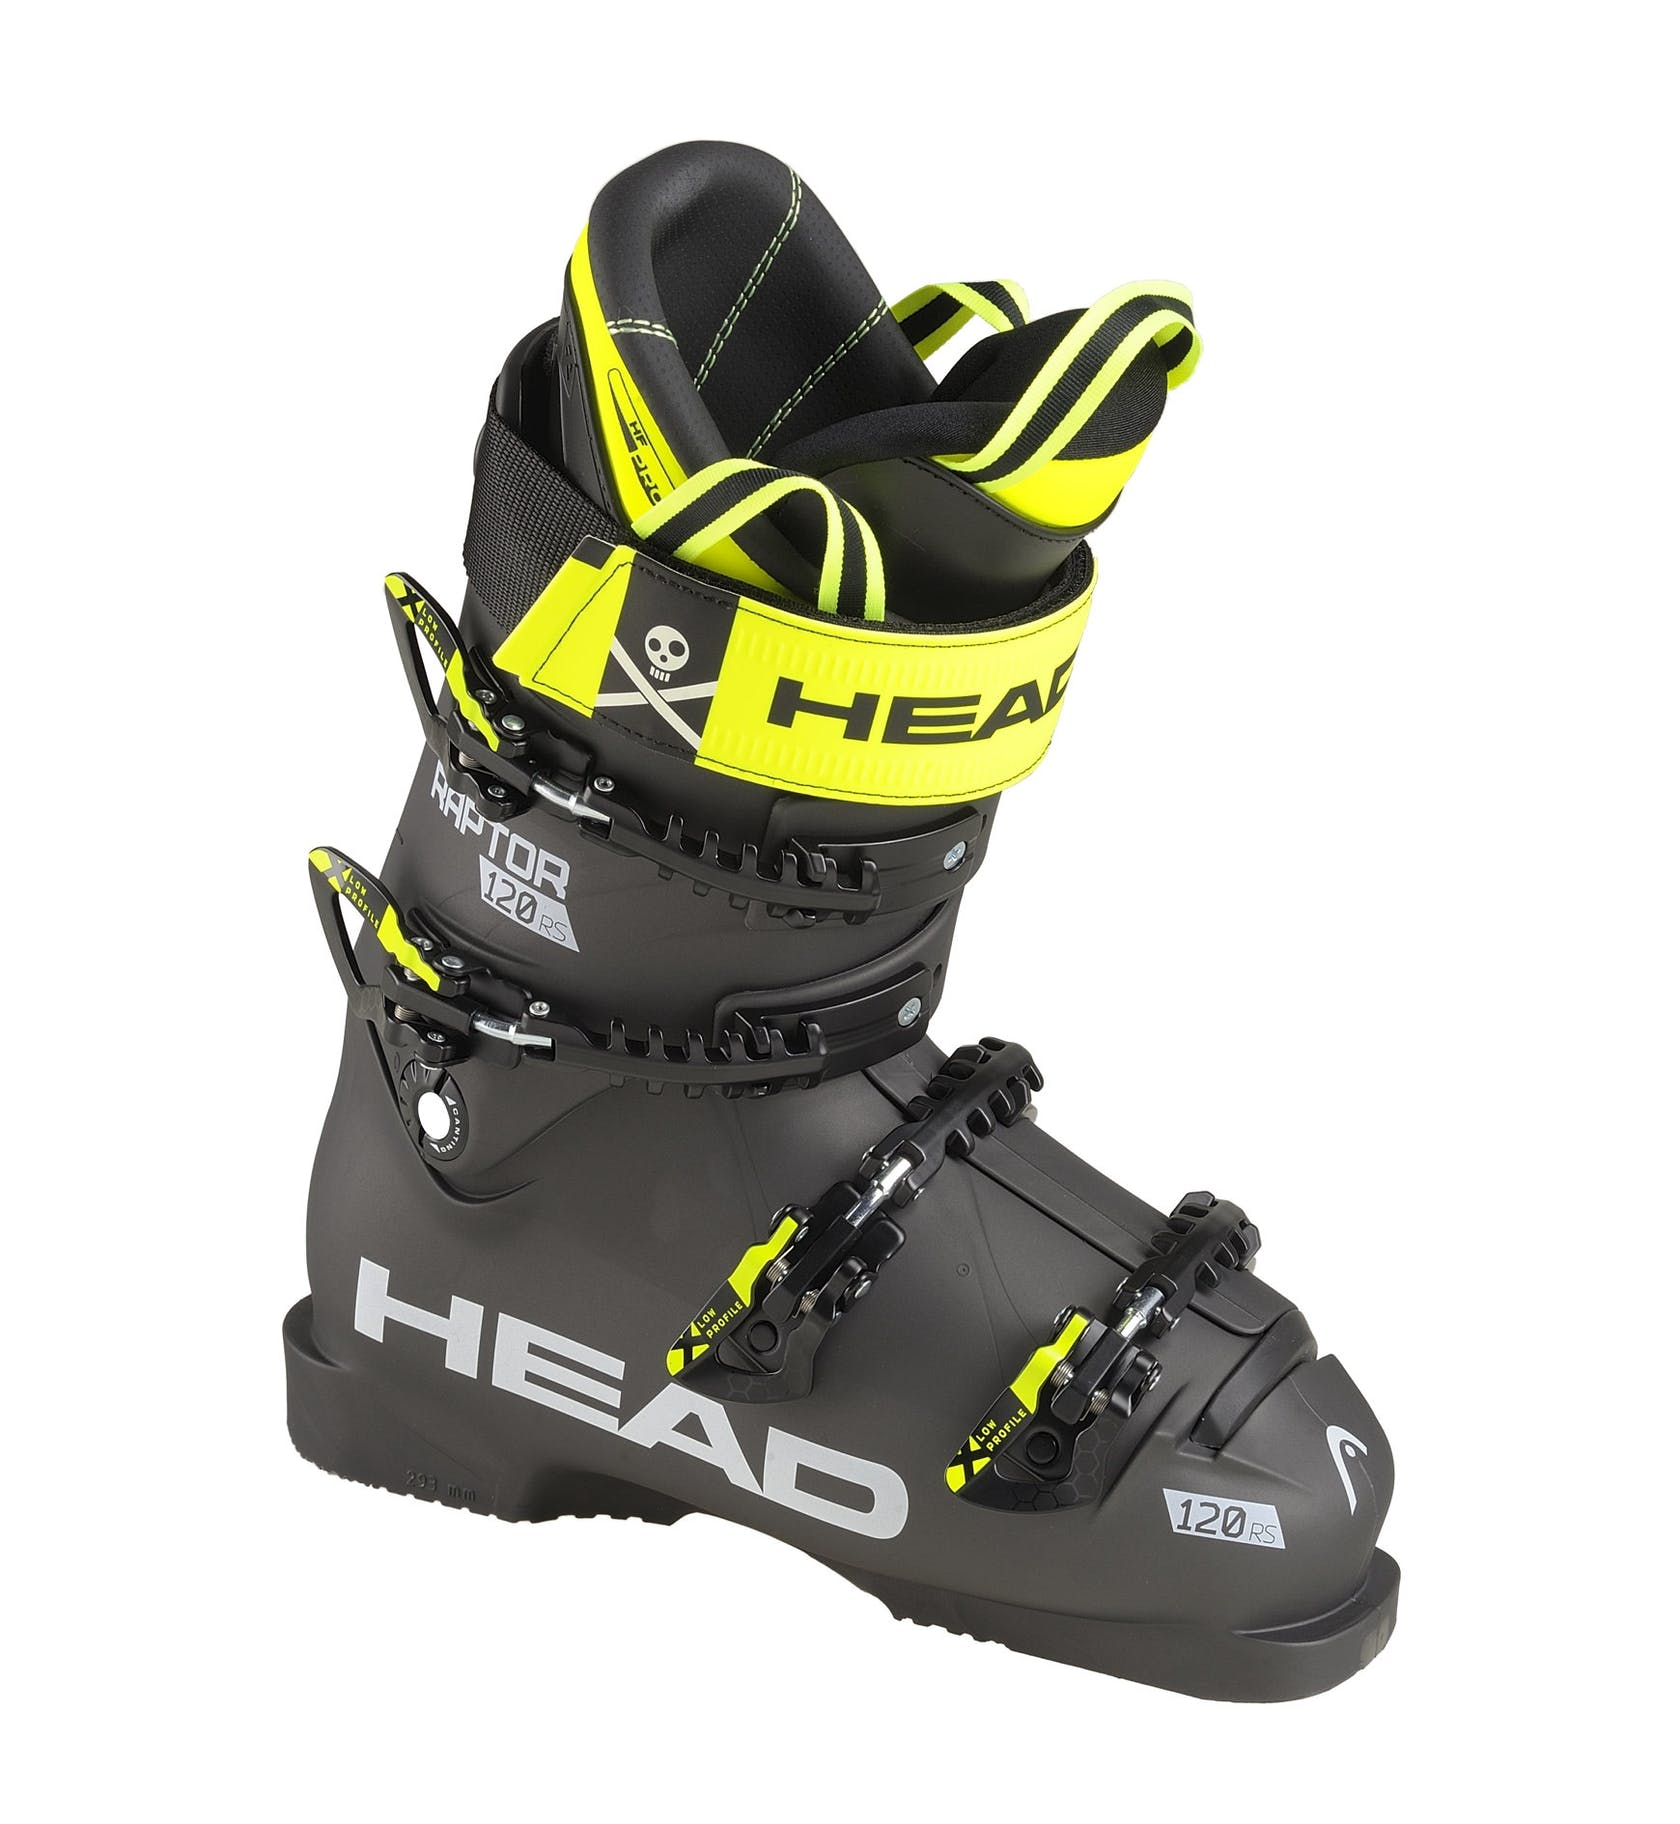 Head Raptor 120S RS - scarpone da sci alpino high performance